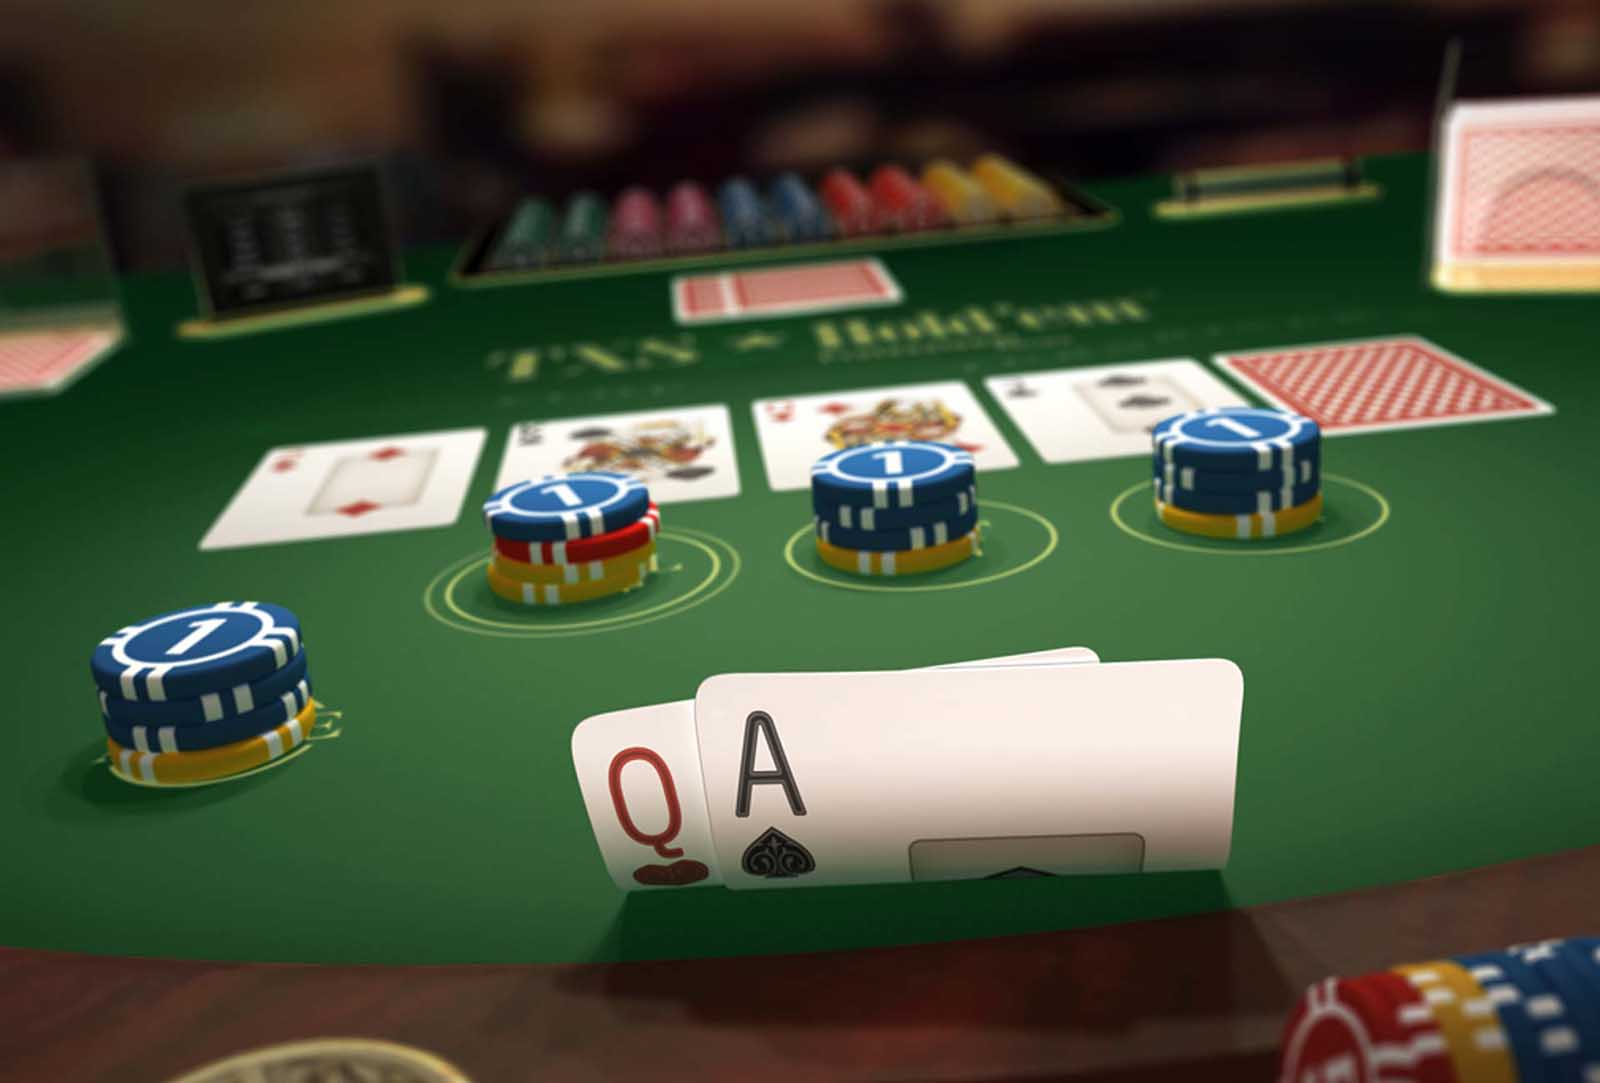 If you're a fan of online blackjack, and live in Canada, we have plenty of resources to help you find the best website to play on.